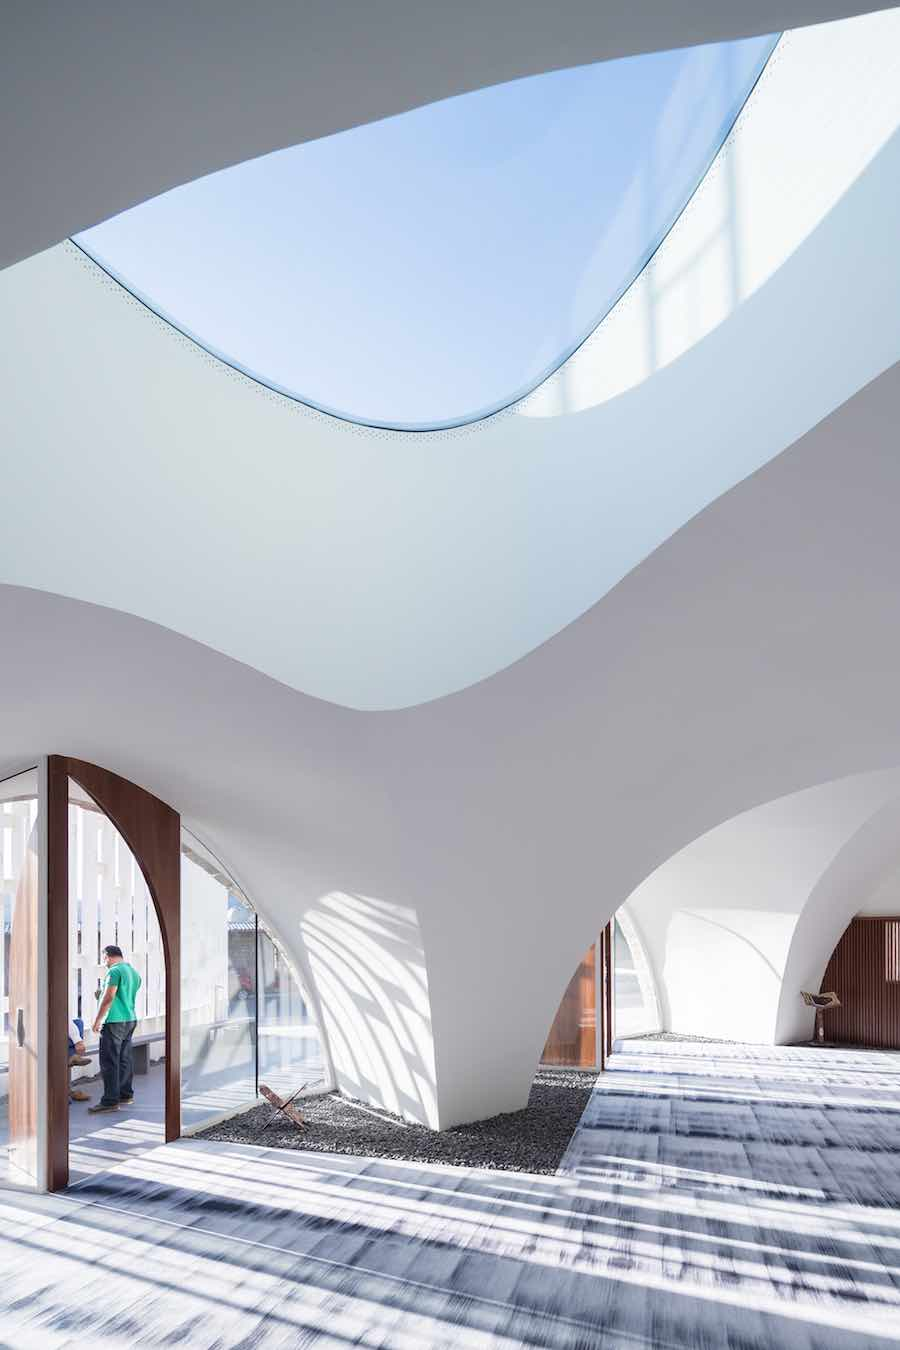 L.E.F.T. adds contemporary light structure to Lebanese Mosque - Photo by Iwan Baan. Courtesy of L.E.F.T.